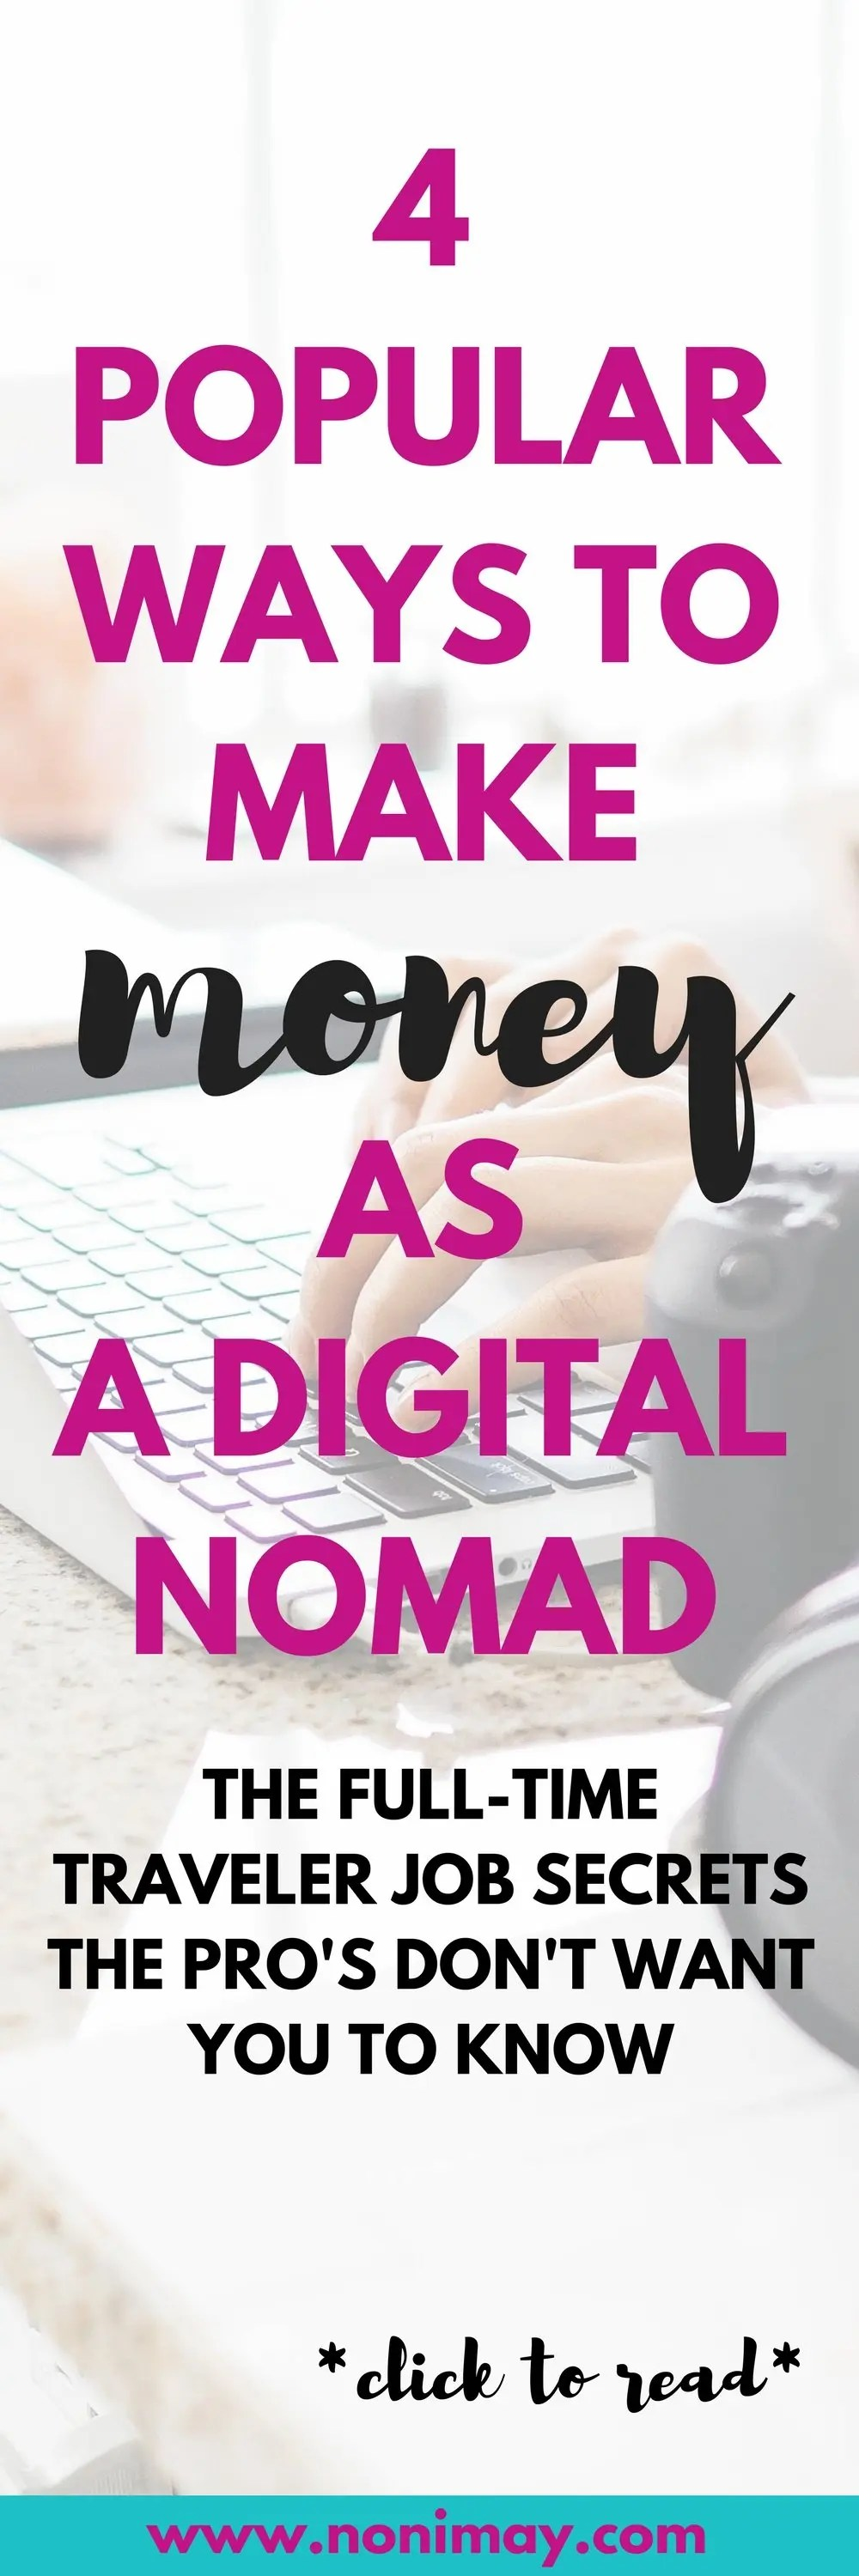 4 Popular ways to make money as a digital nomad in 2018